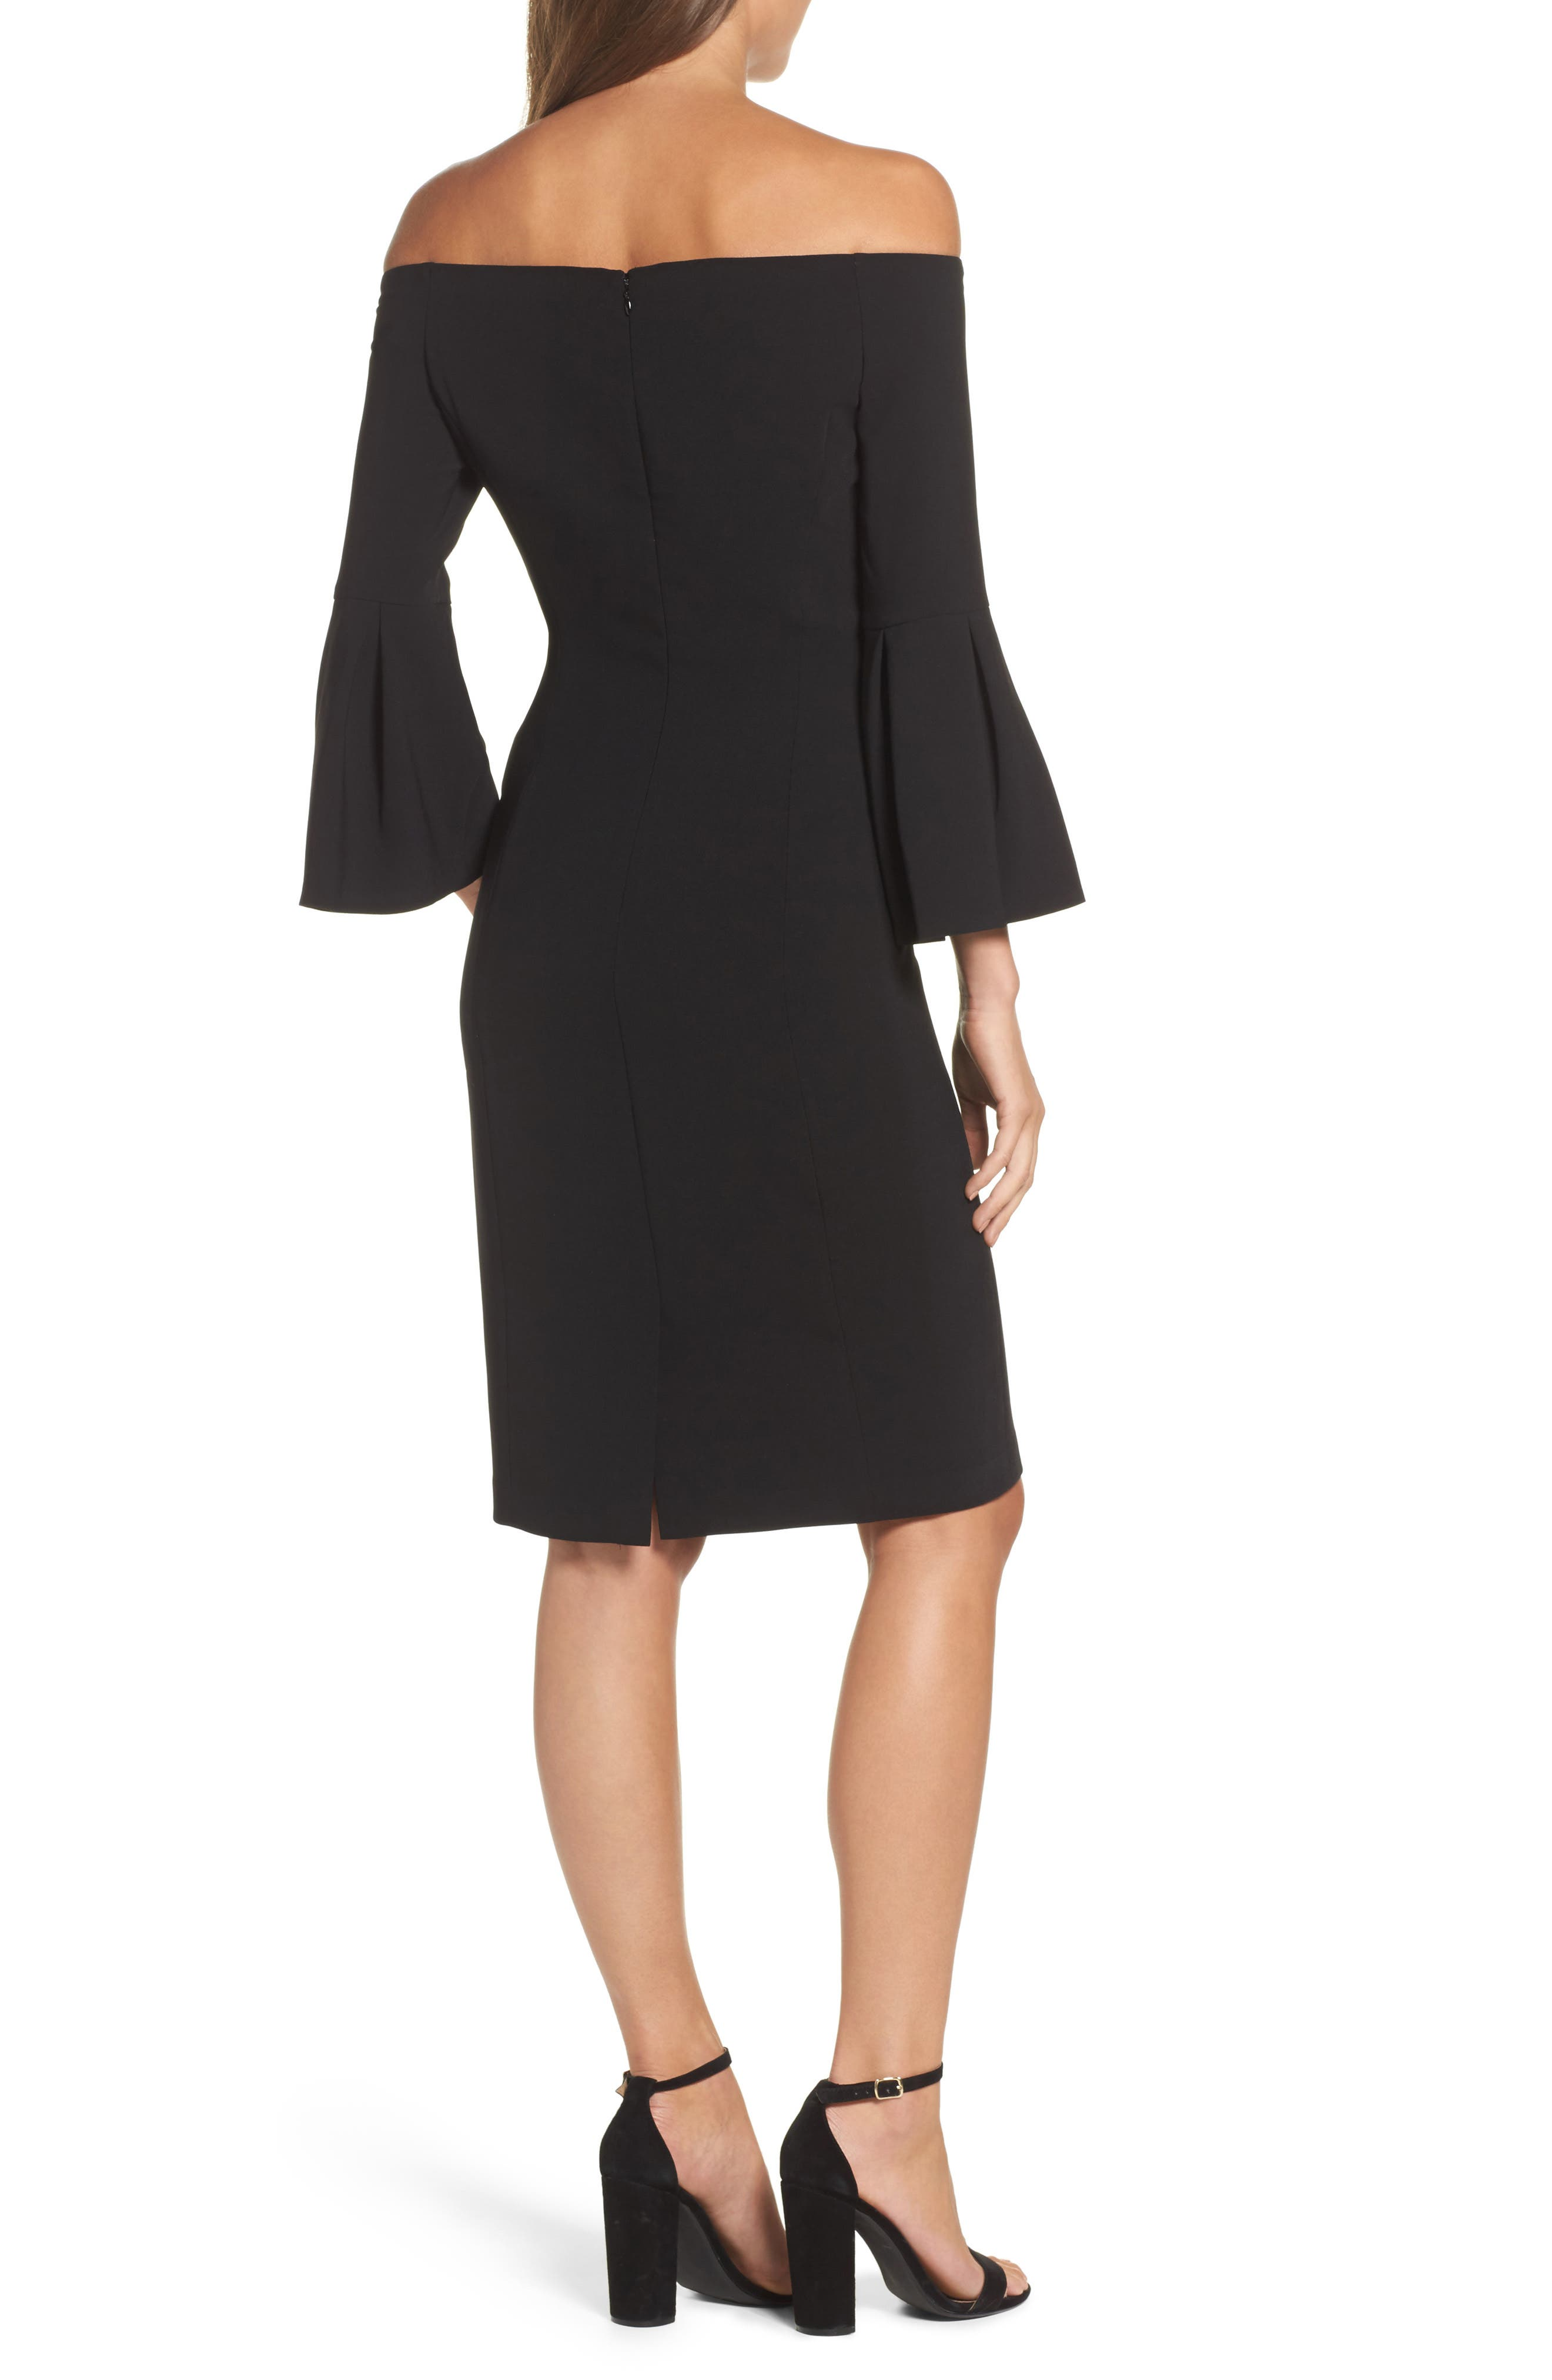 VINCE CAMUTO,                             Off the Shoulder Bell Sleeve Sheath Dress,                             Alternate thumbnail 2, color,                             001